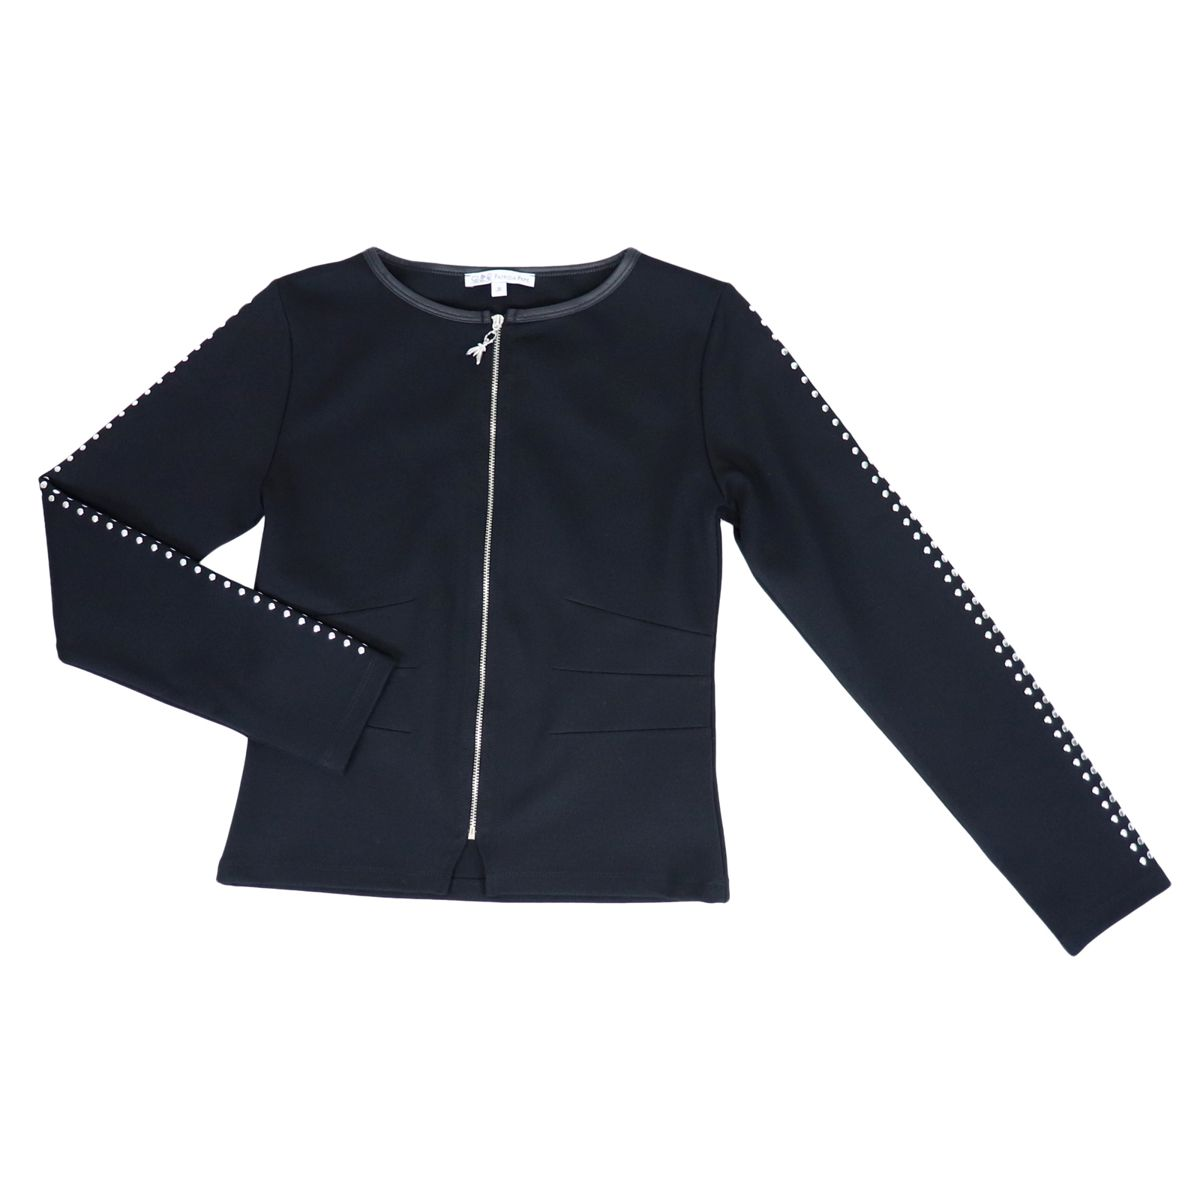 Full zip jacket with studs details on the sleeves Black Patrizia Pepe